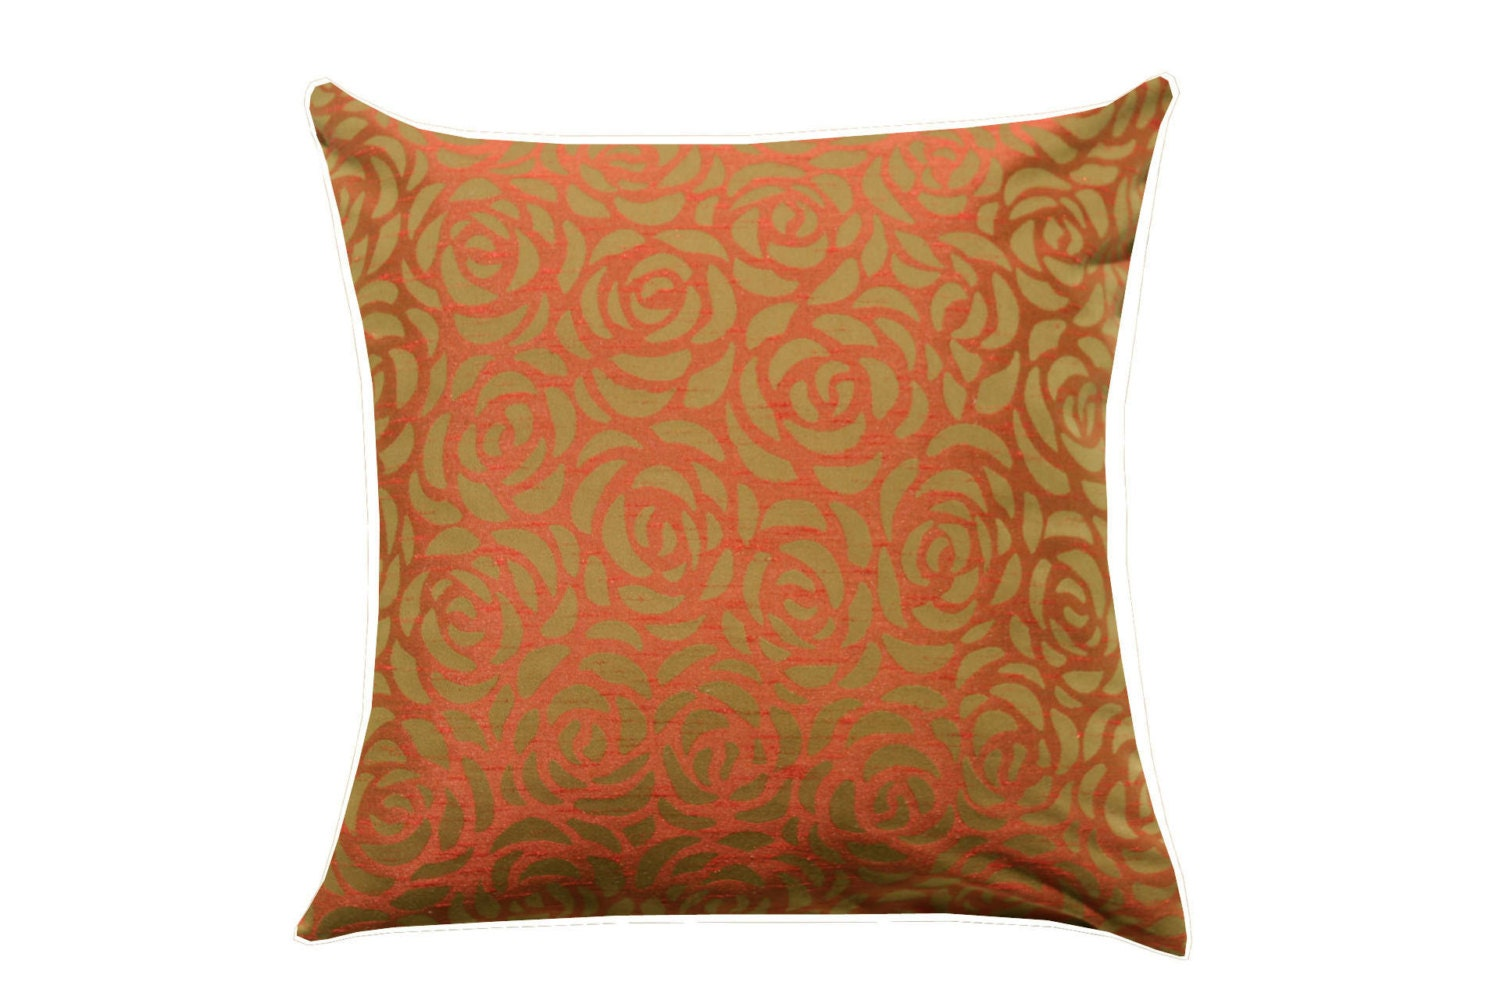 Decorative Throw Pillow CoversCouch Pillow Luxury Pillow